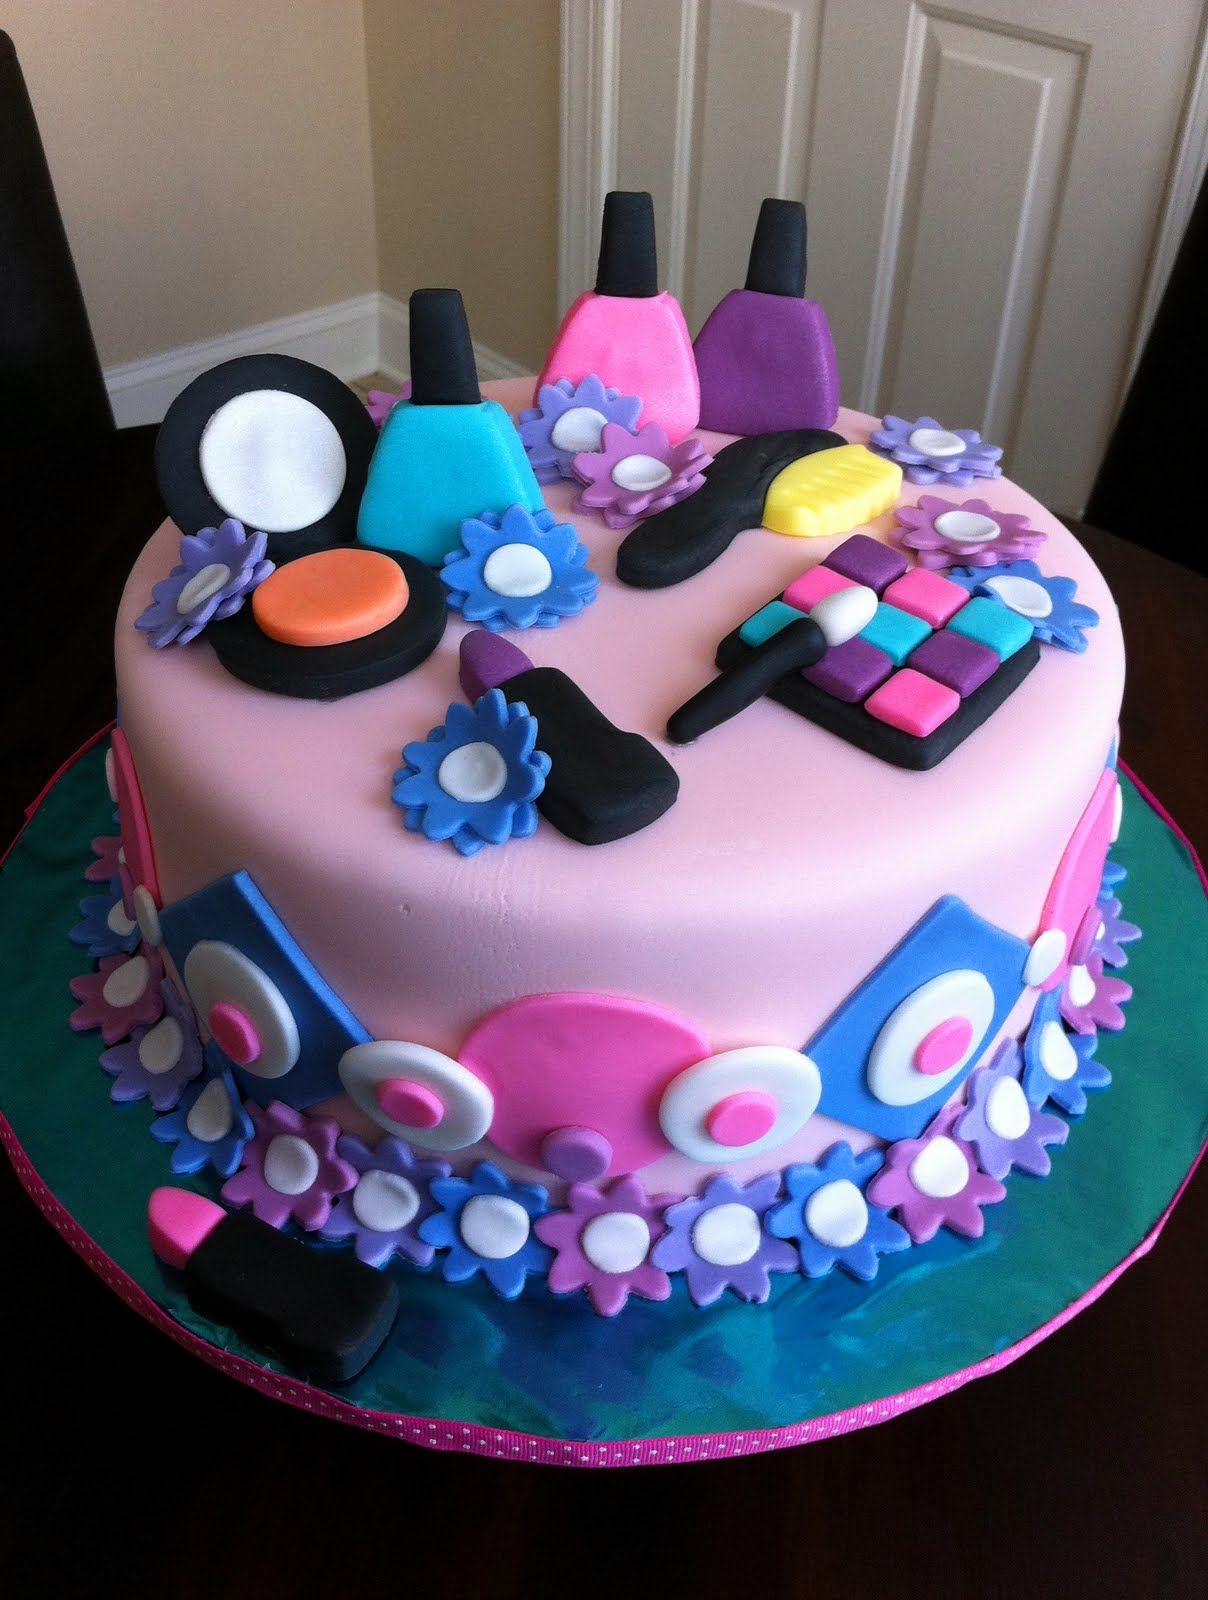 13 Birthday Cakes For Teens Teenage Girl Birthday Cake Ideas